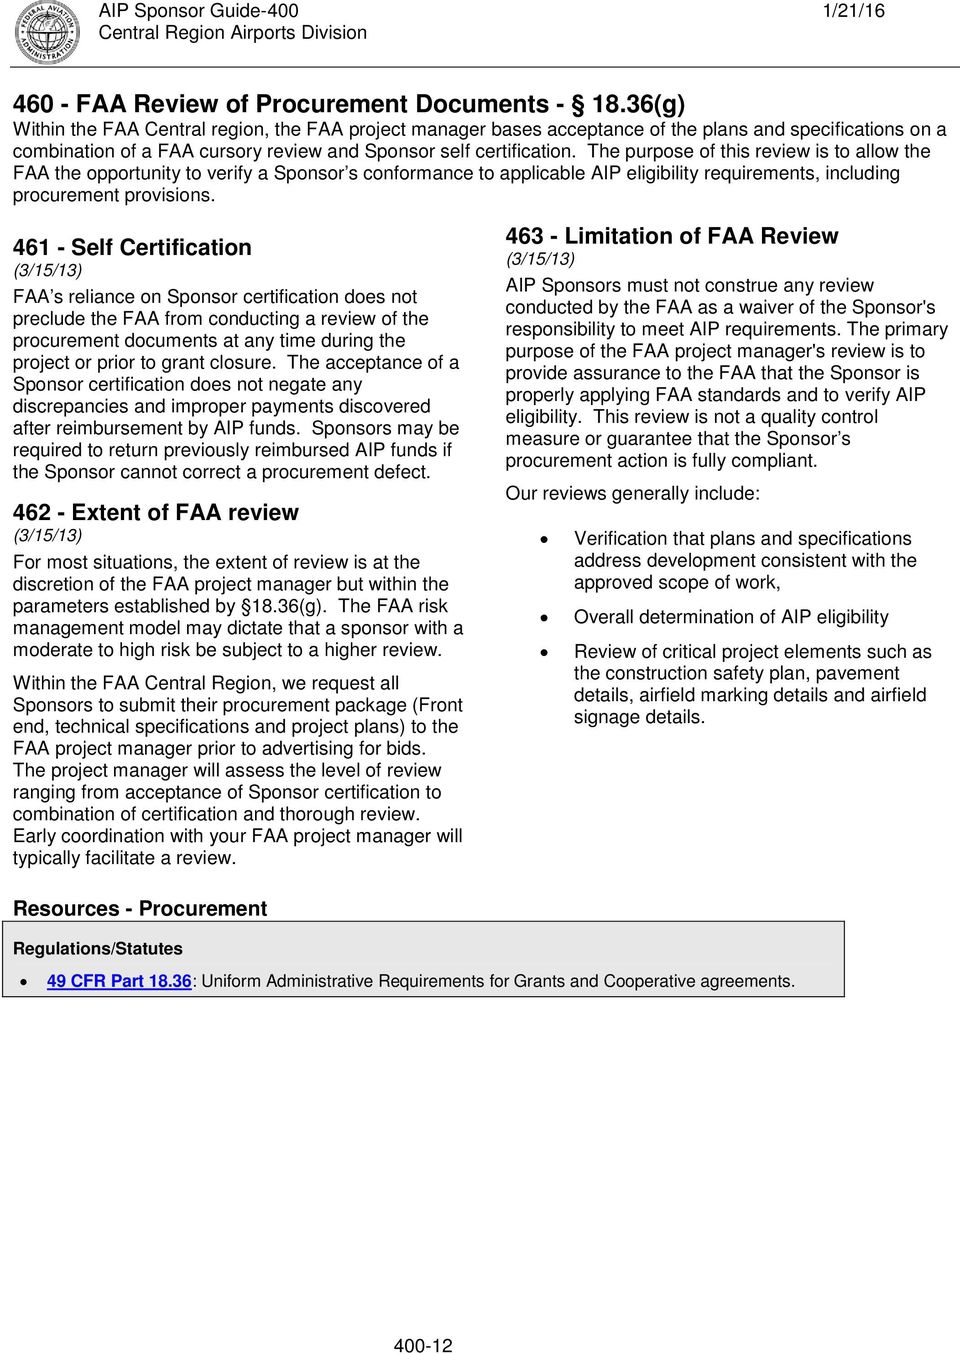 The purpose of this review is to allow the FAA the opportunity to verify a Sponsor s conformance to applicable AIP eligibility requirements, including procurement provisions.